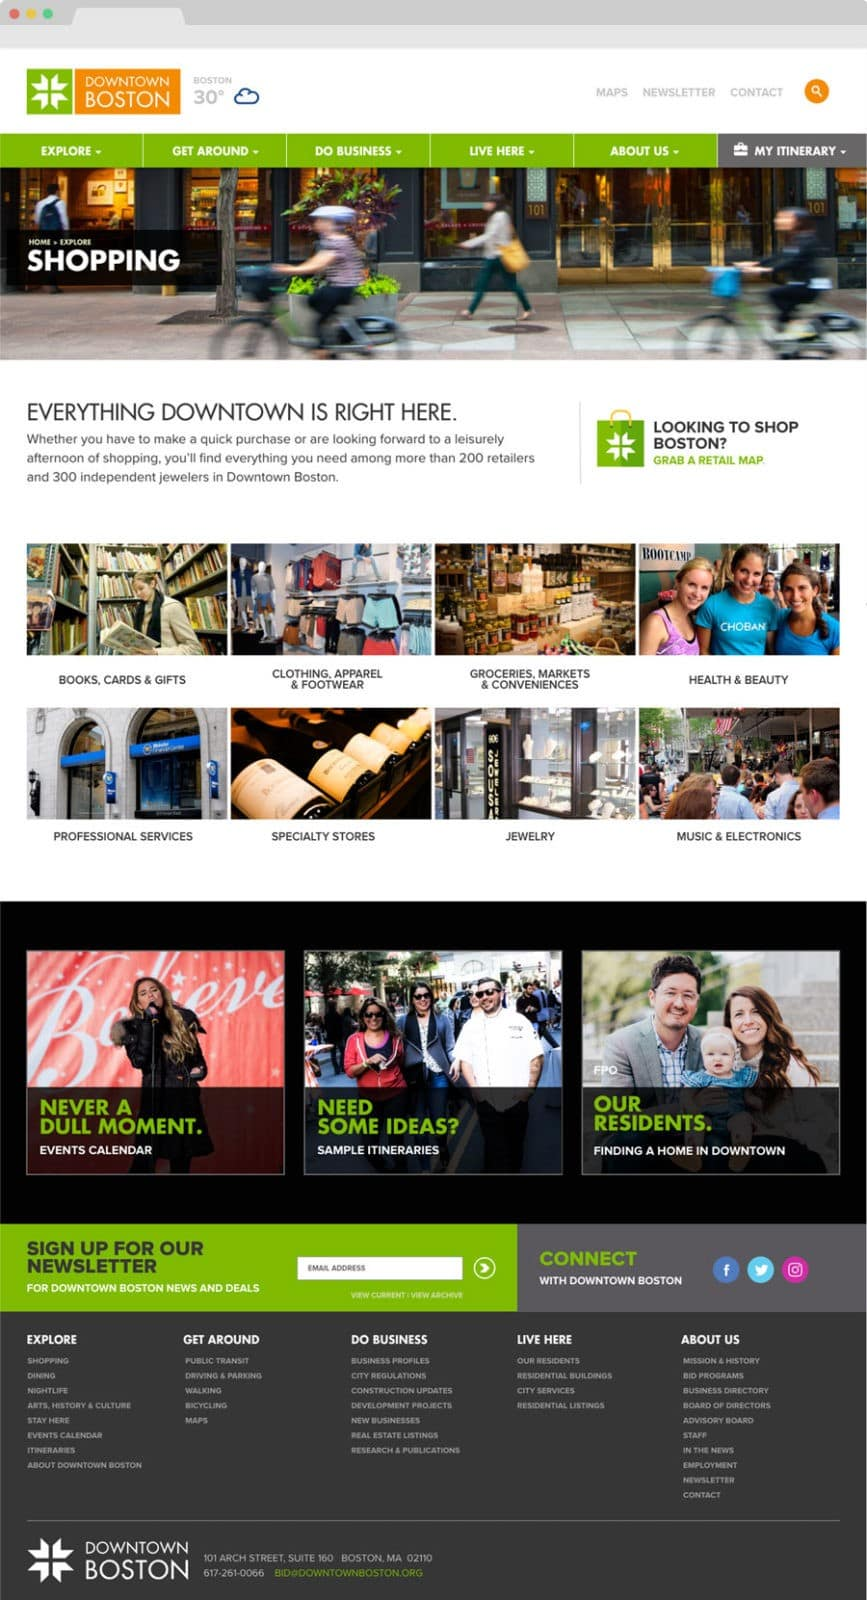 Boston BID responsive website design. Clutch Creative co. Burlington, VT website design.